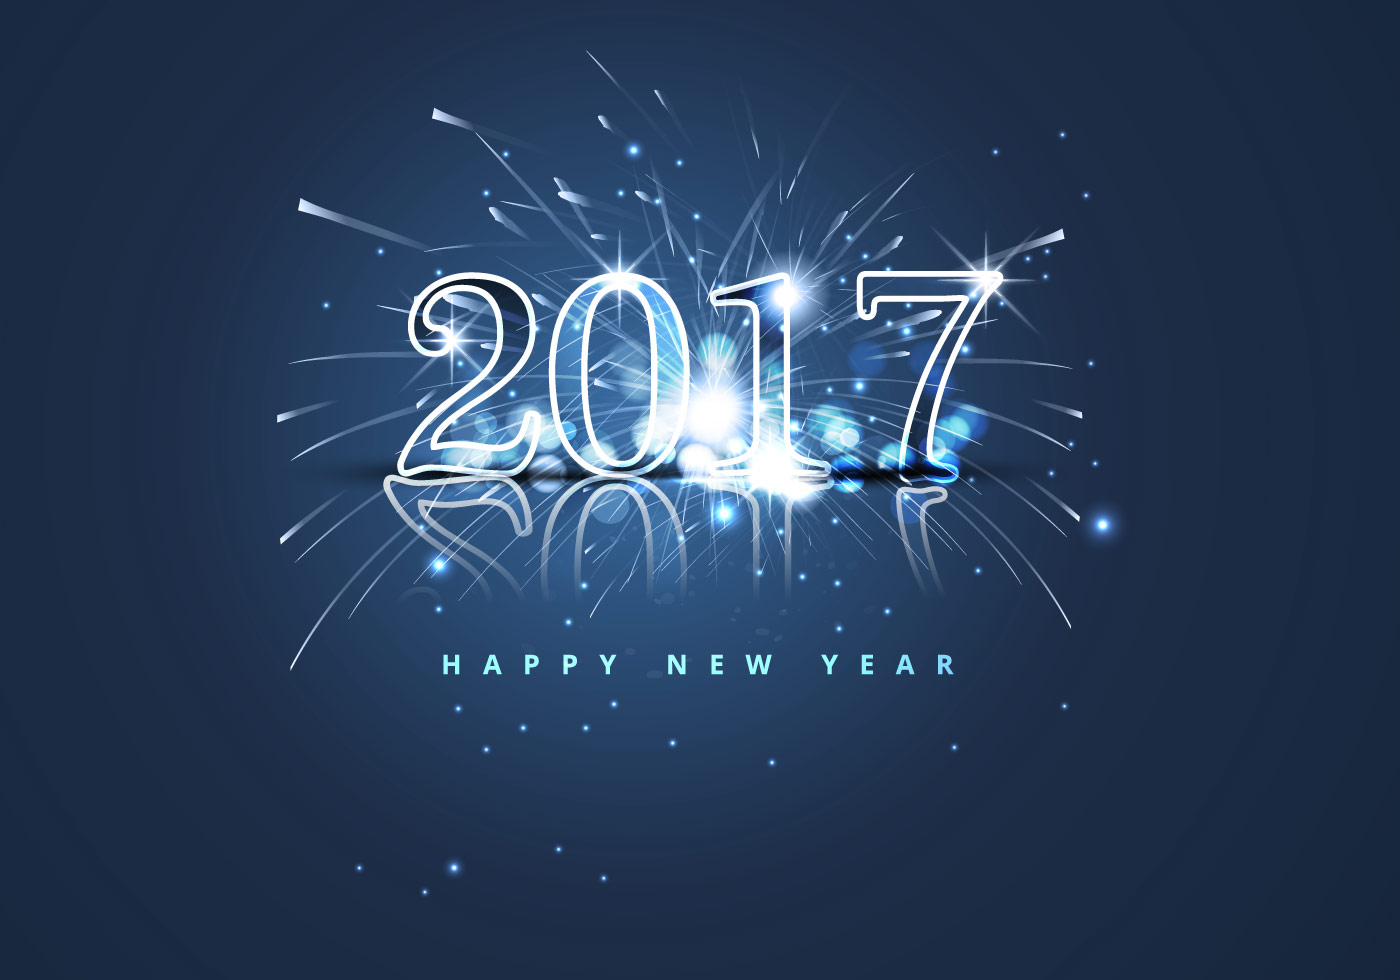 happy new year 2017 with fire cracker download free vector art stock graphics images